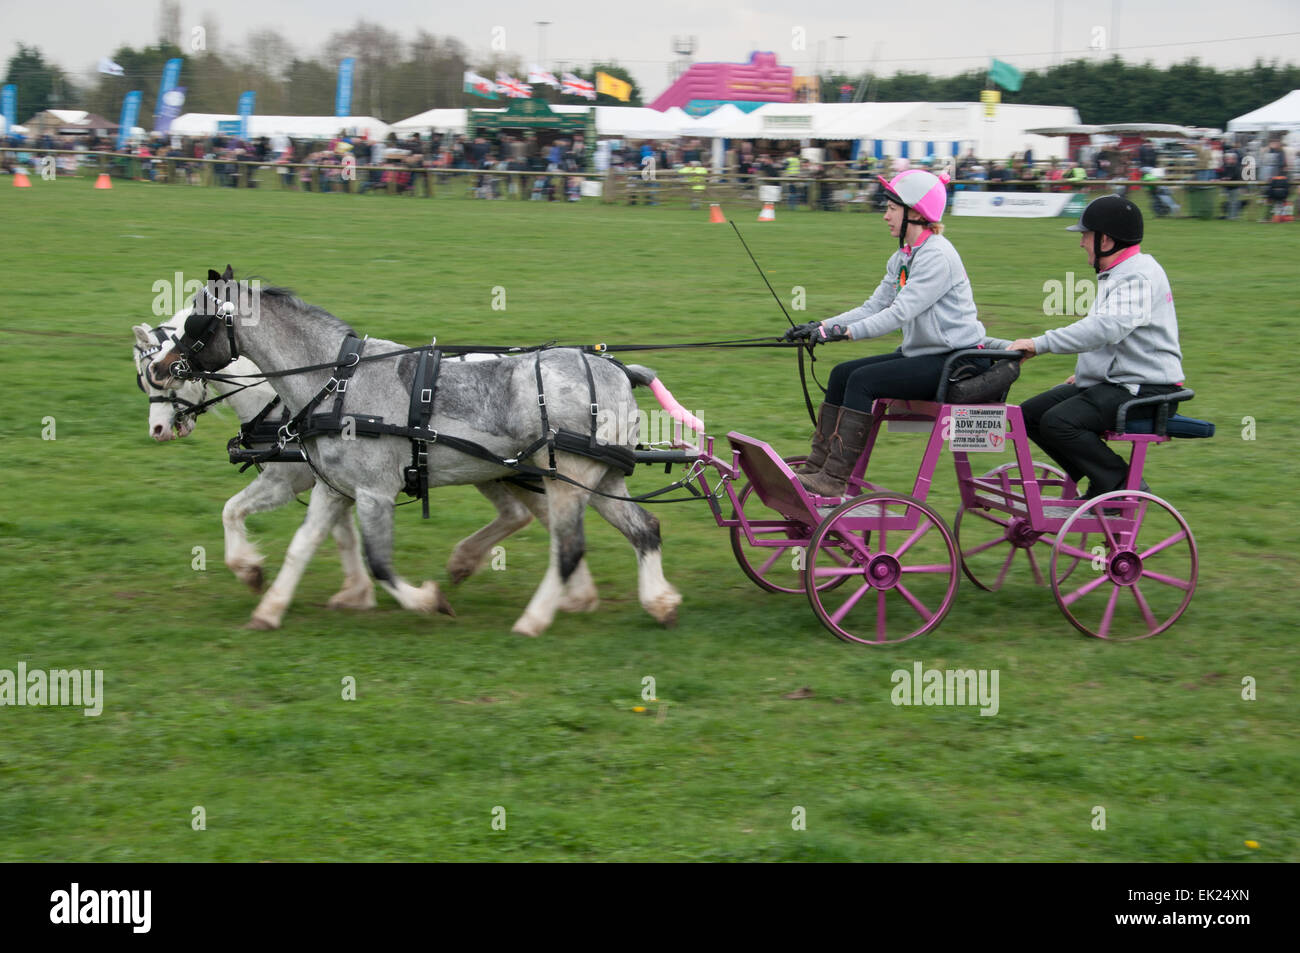 Thame, Oxon, UK. 5th April, 2015. Thame country show Day 1, Oxfordshire, 5th April 2015, picture from the annual - Stock Image